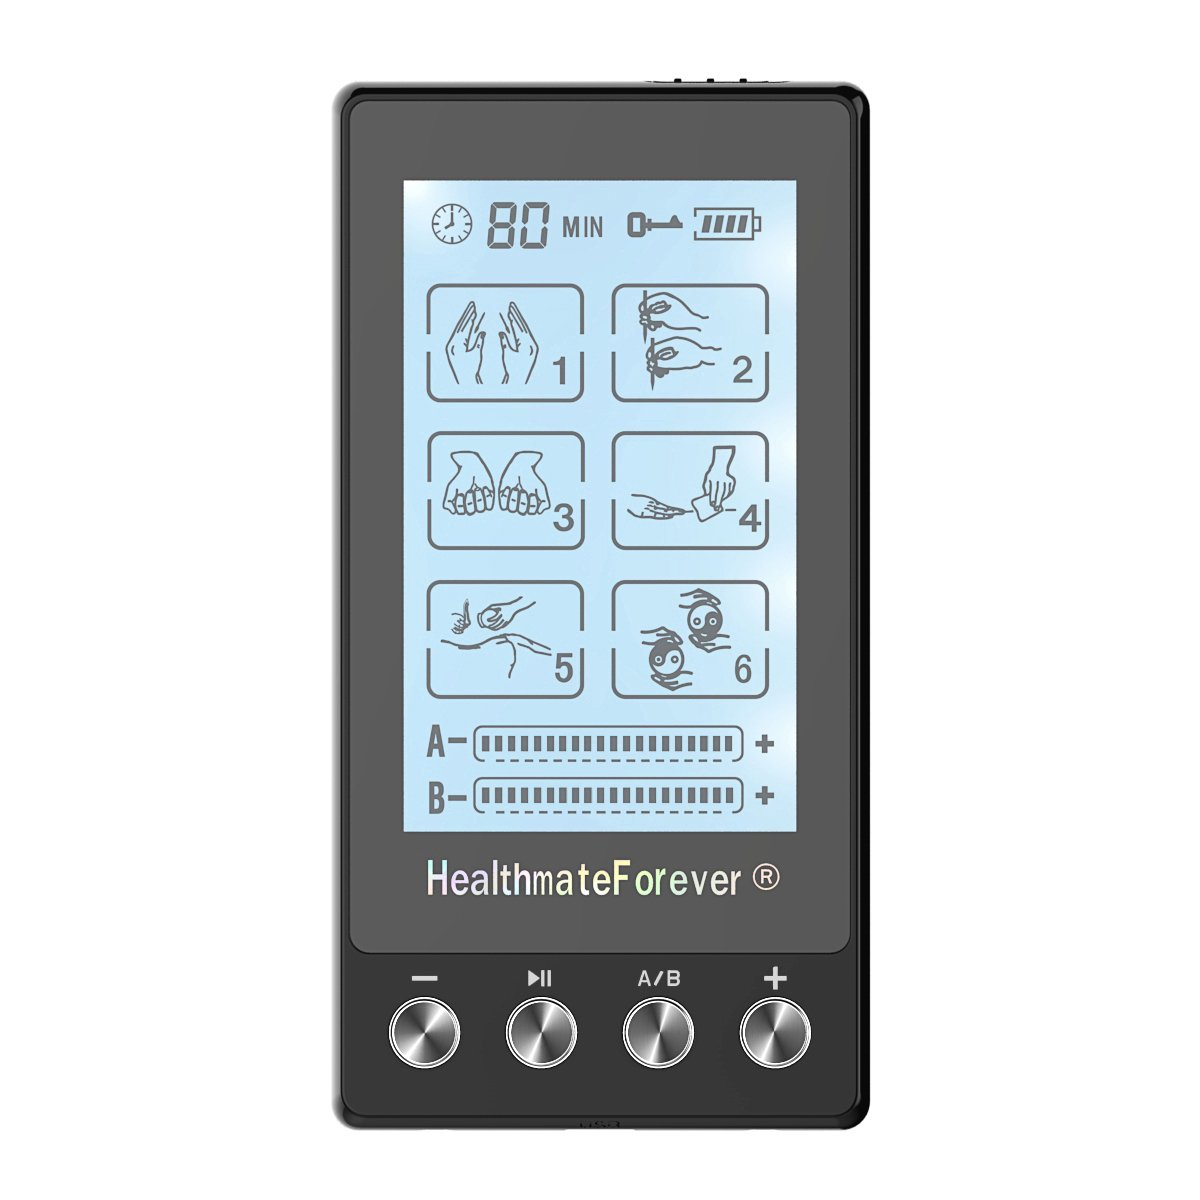 TS6AB HealthmateForever TENS Unit Electrical Muscle Stimulator Black + 2 Pairs of Pads